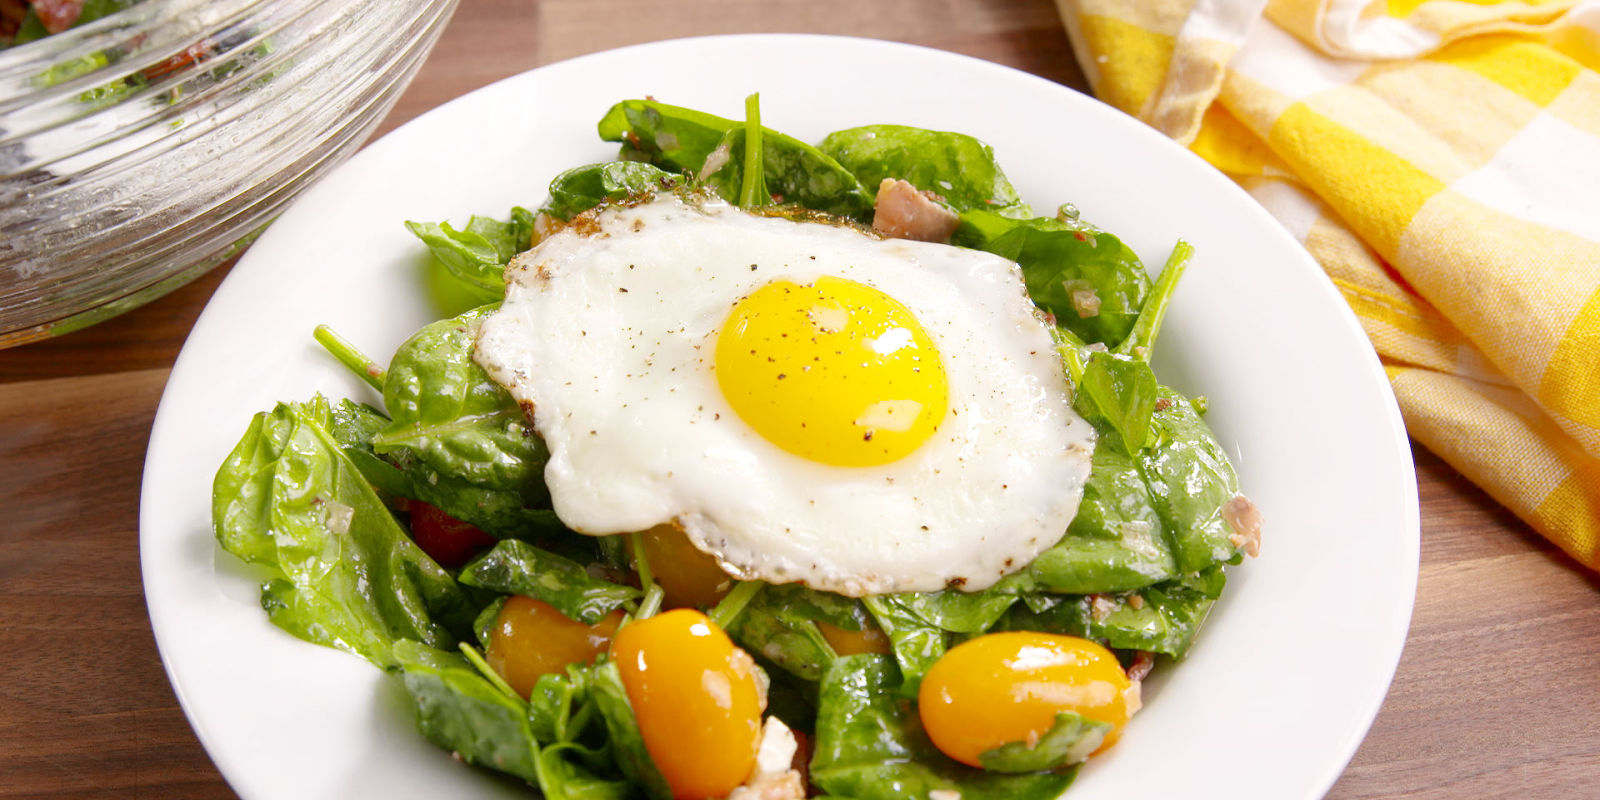 http://del.h-cdn.co/assets/16/34/1600x800/landscape-1471961886-delish-bacon-egg-and-spinach-salad-2.jpg